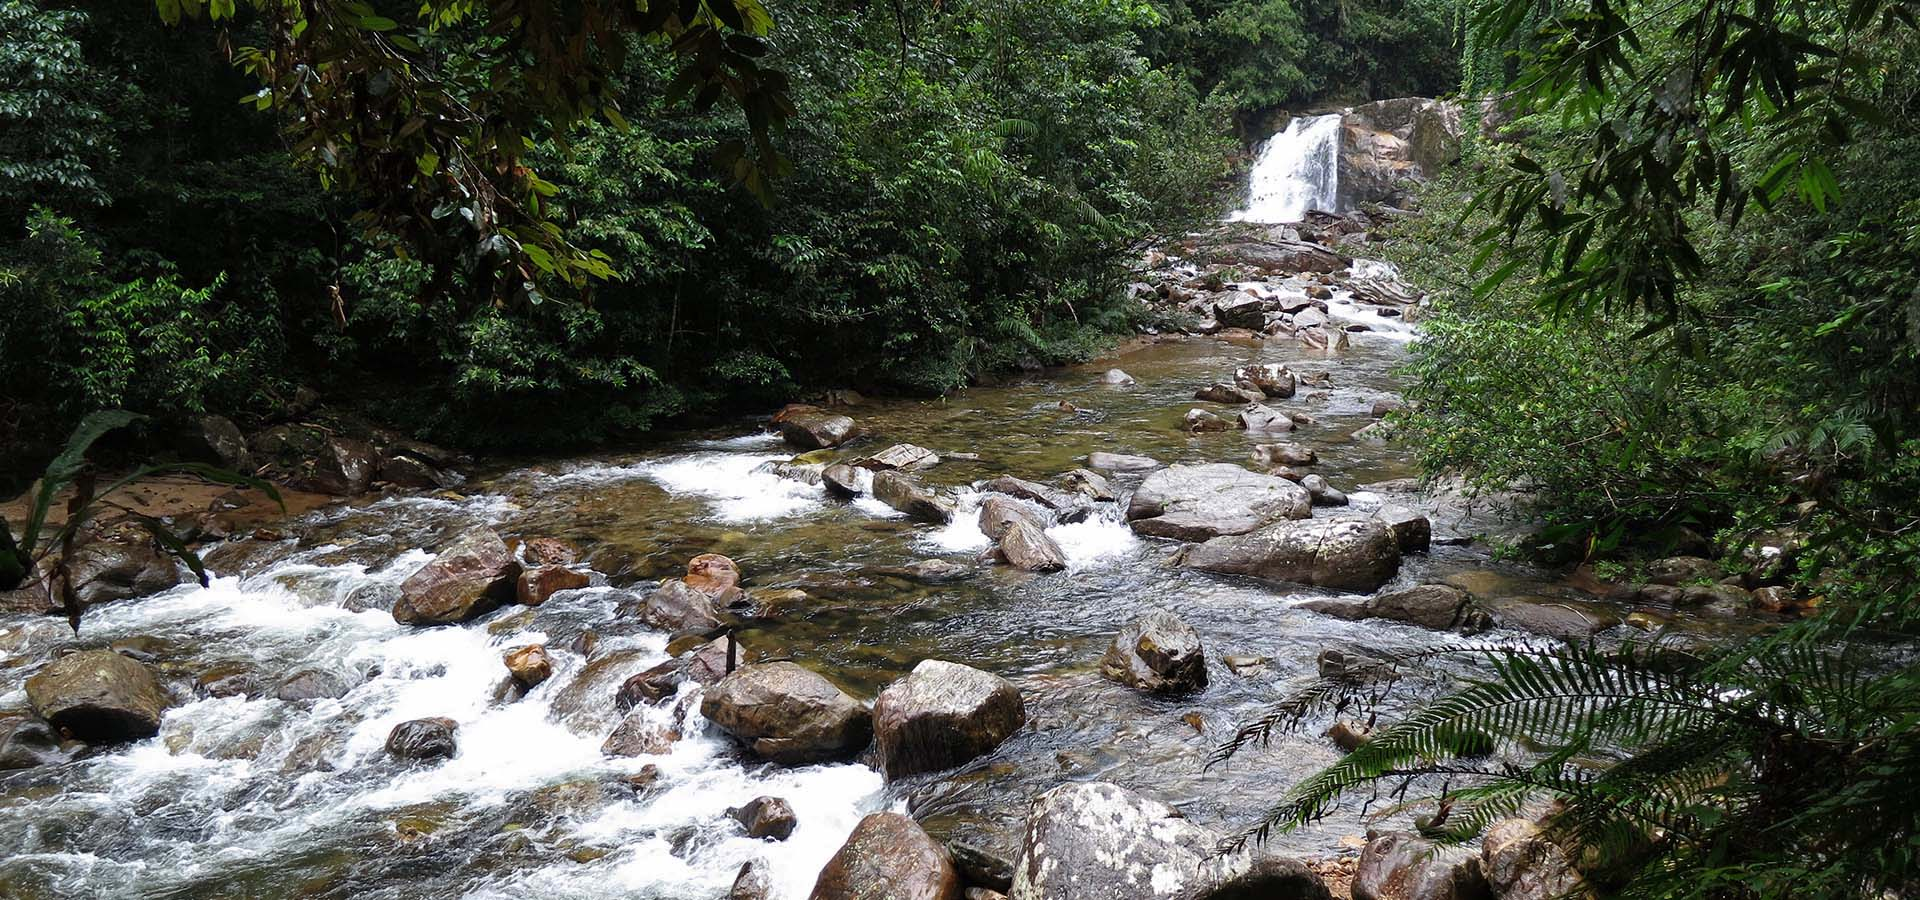 Day Trip to Sinharaja Rain Forest, Sinharaja Rain Forest Day Tour, Excursion to Sinharaja Day Tour, SInharaja Rain Forest Day Trip